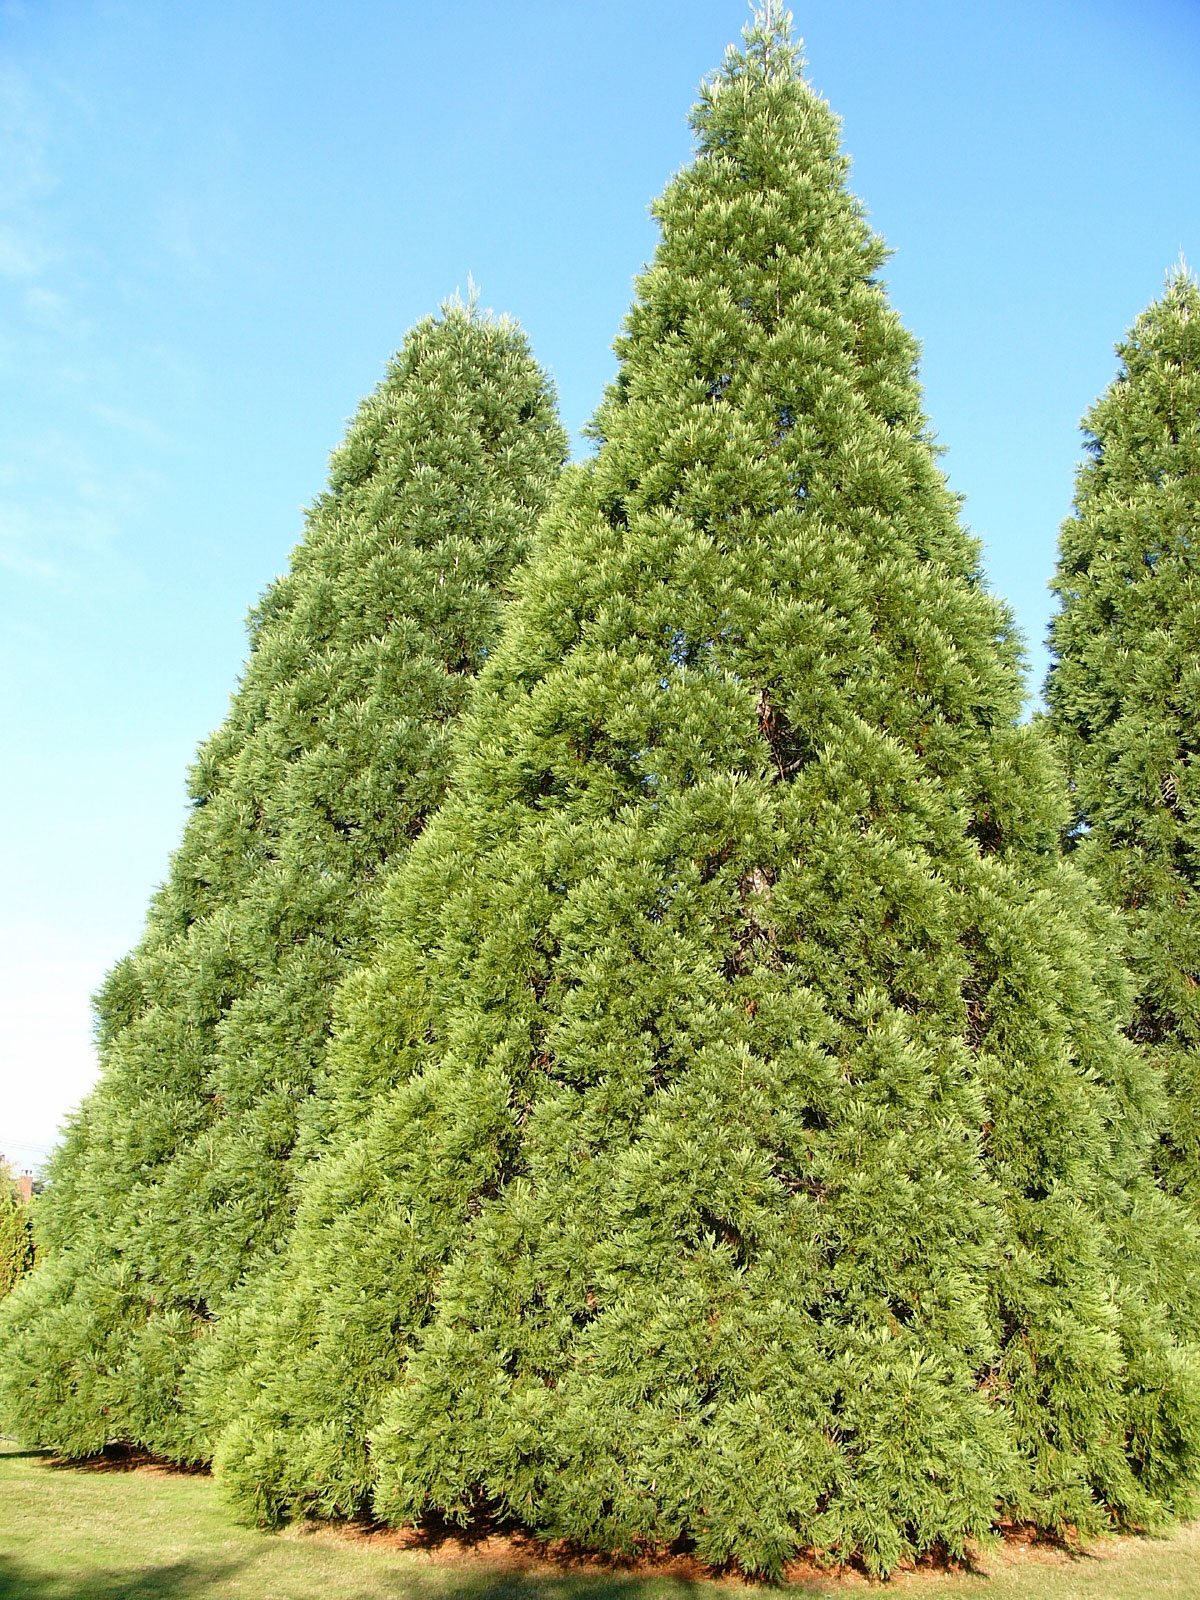 Facts About Cedar Trees – Learn How To Care For A Cedar Tree